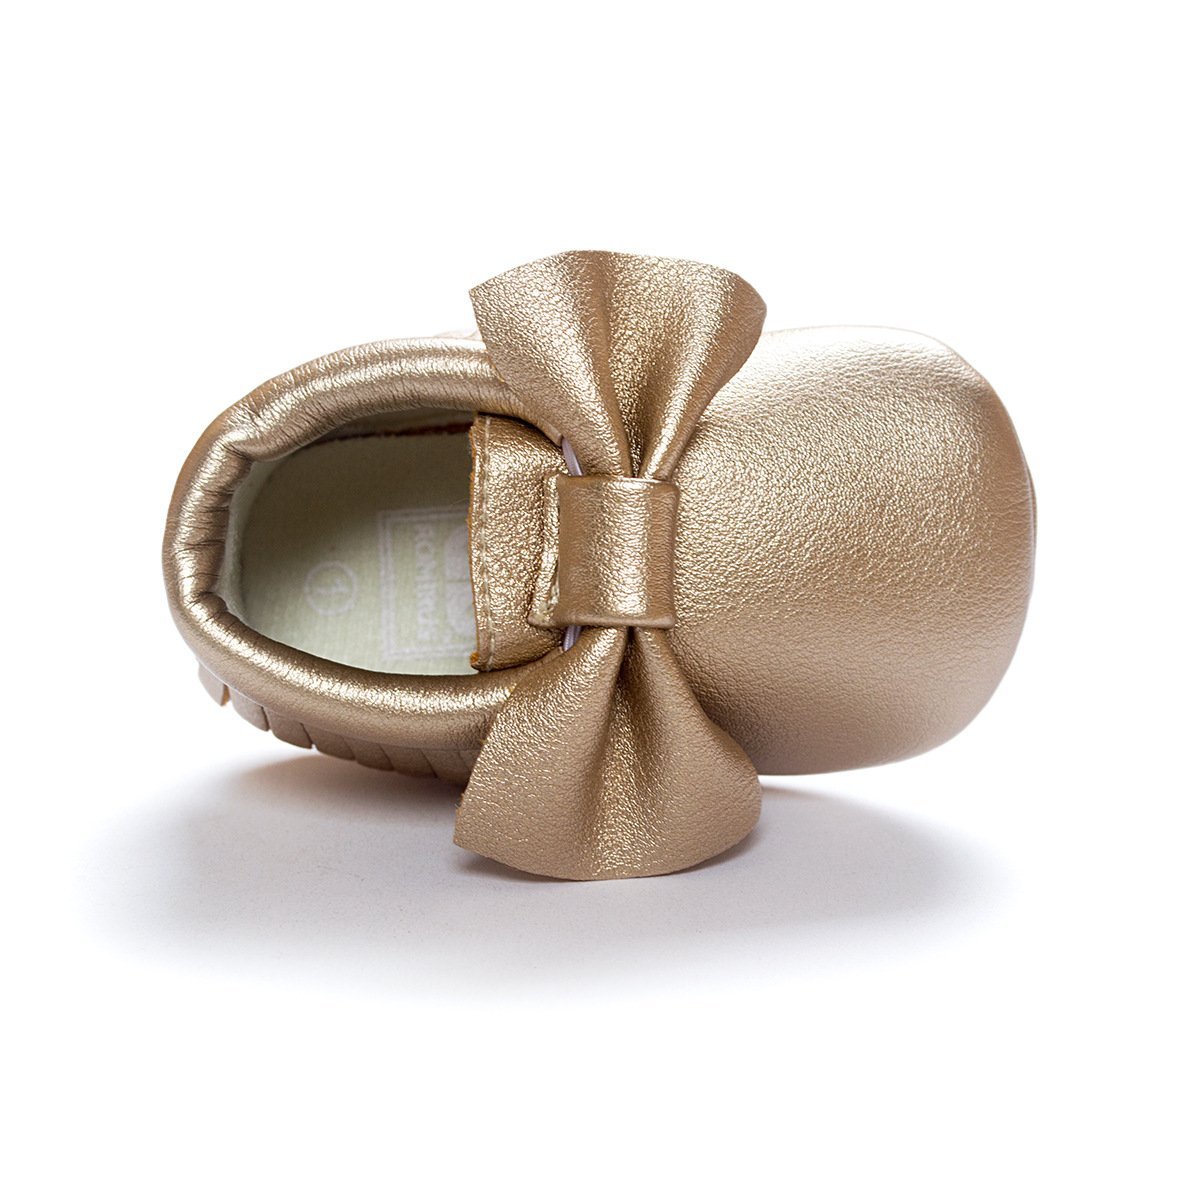 C&H Baby boy girl soft cute tassel bow tassels baby cot shoes baby shoes (11cm(0-6months), 5107 golden) by C&H (Image #2)